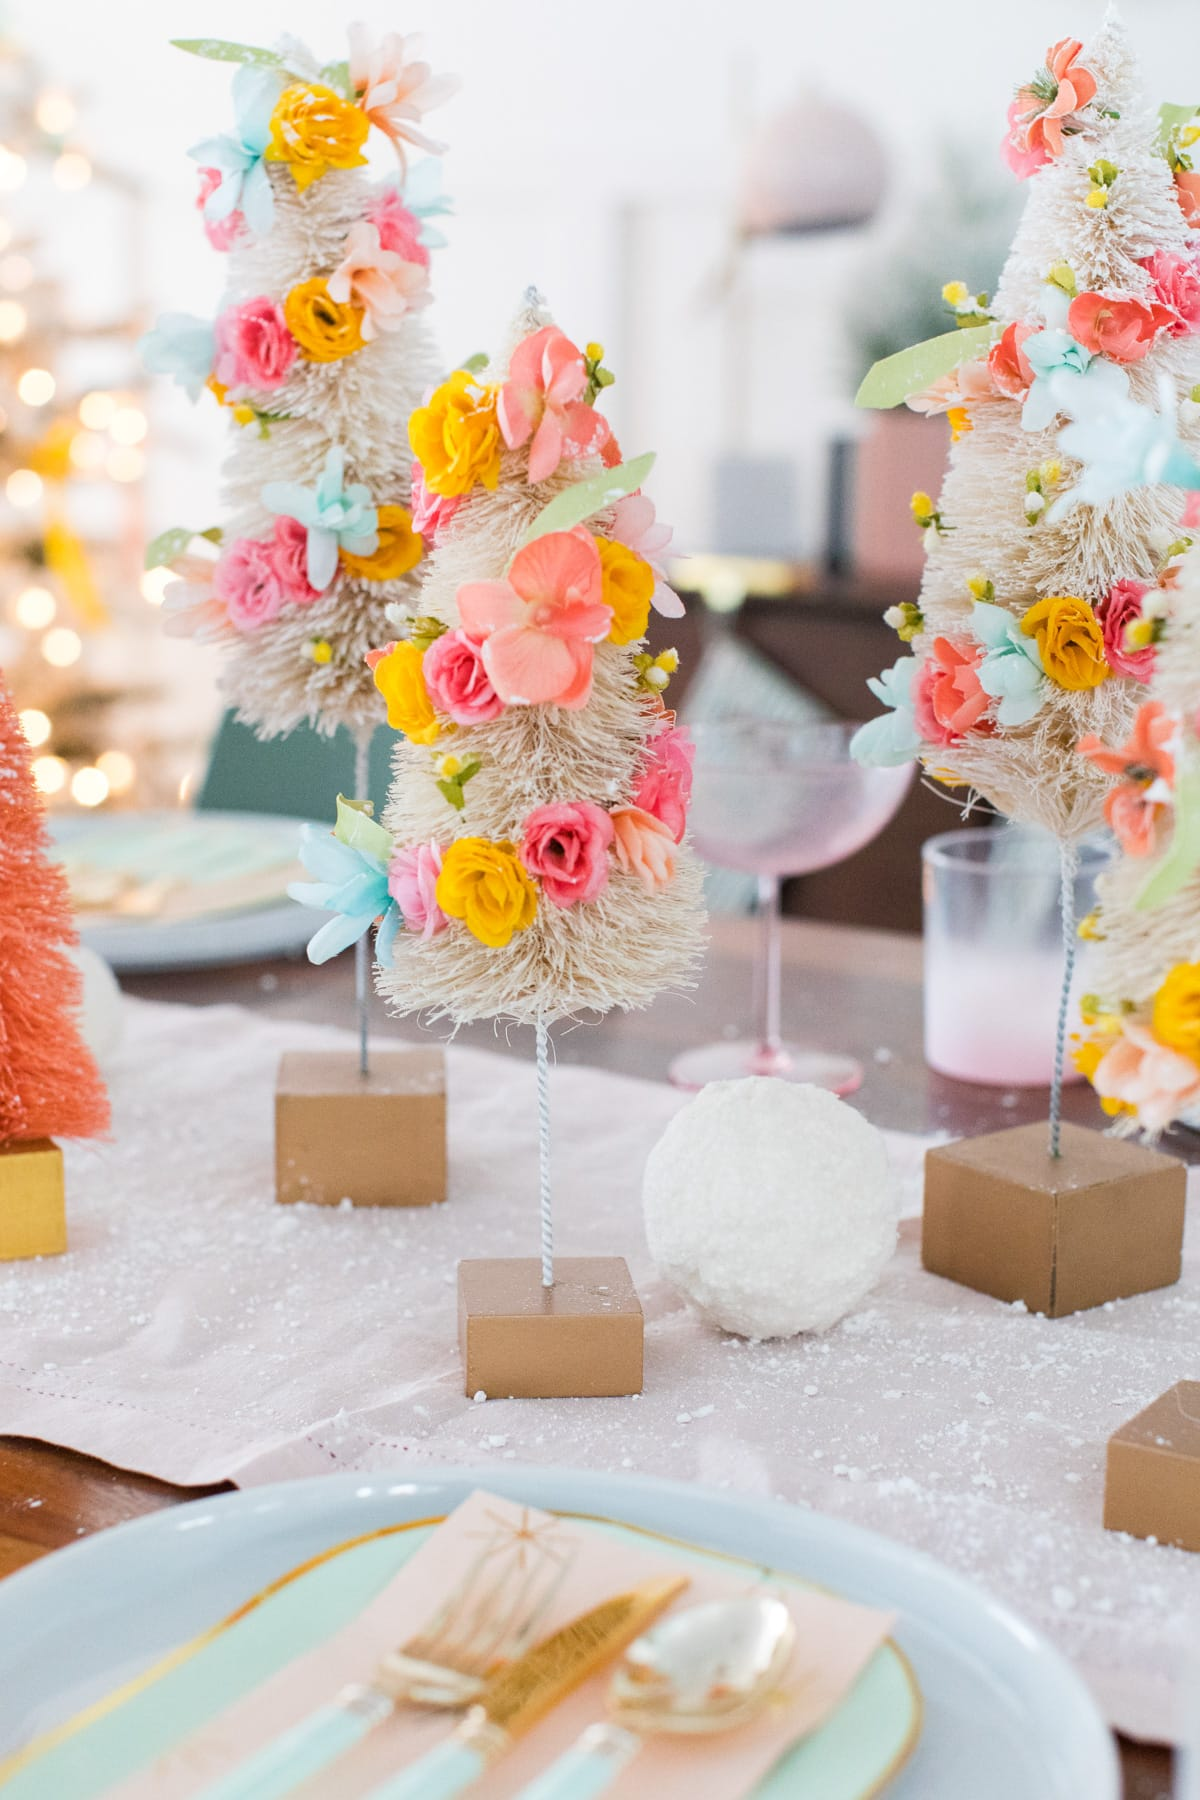 ... or mix them with faux snowballs - Faux Flower Bottle Brush Tree DIY Christmas Centerpiece Idea ...